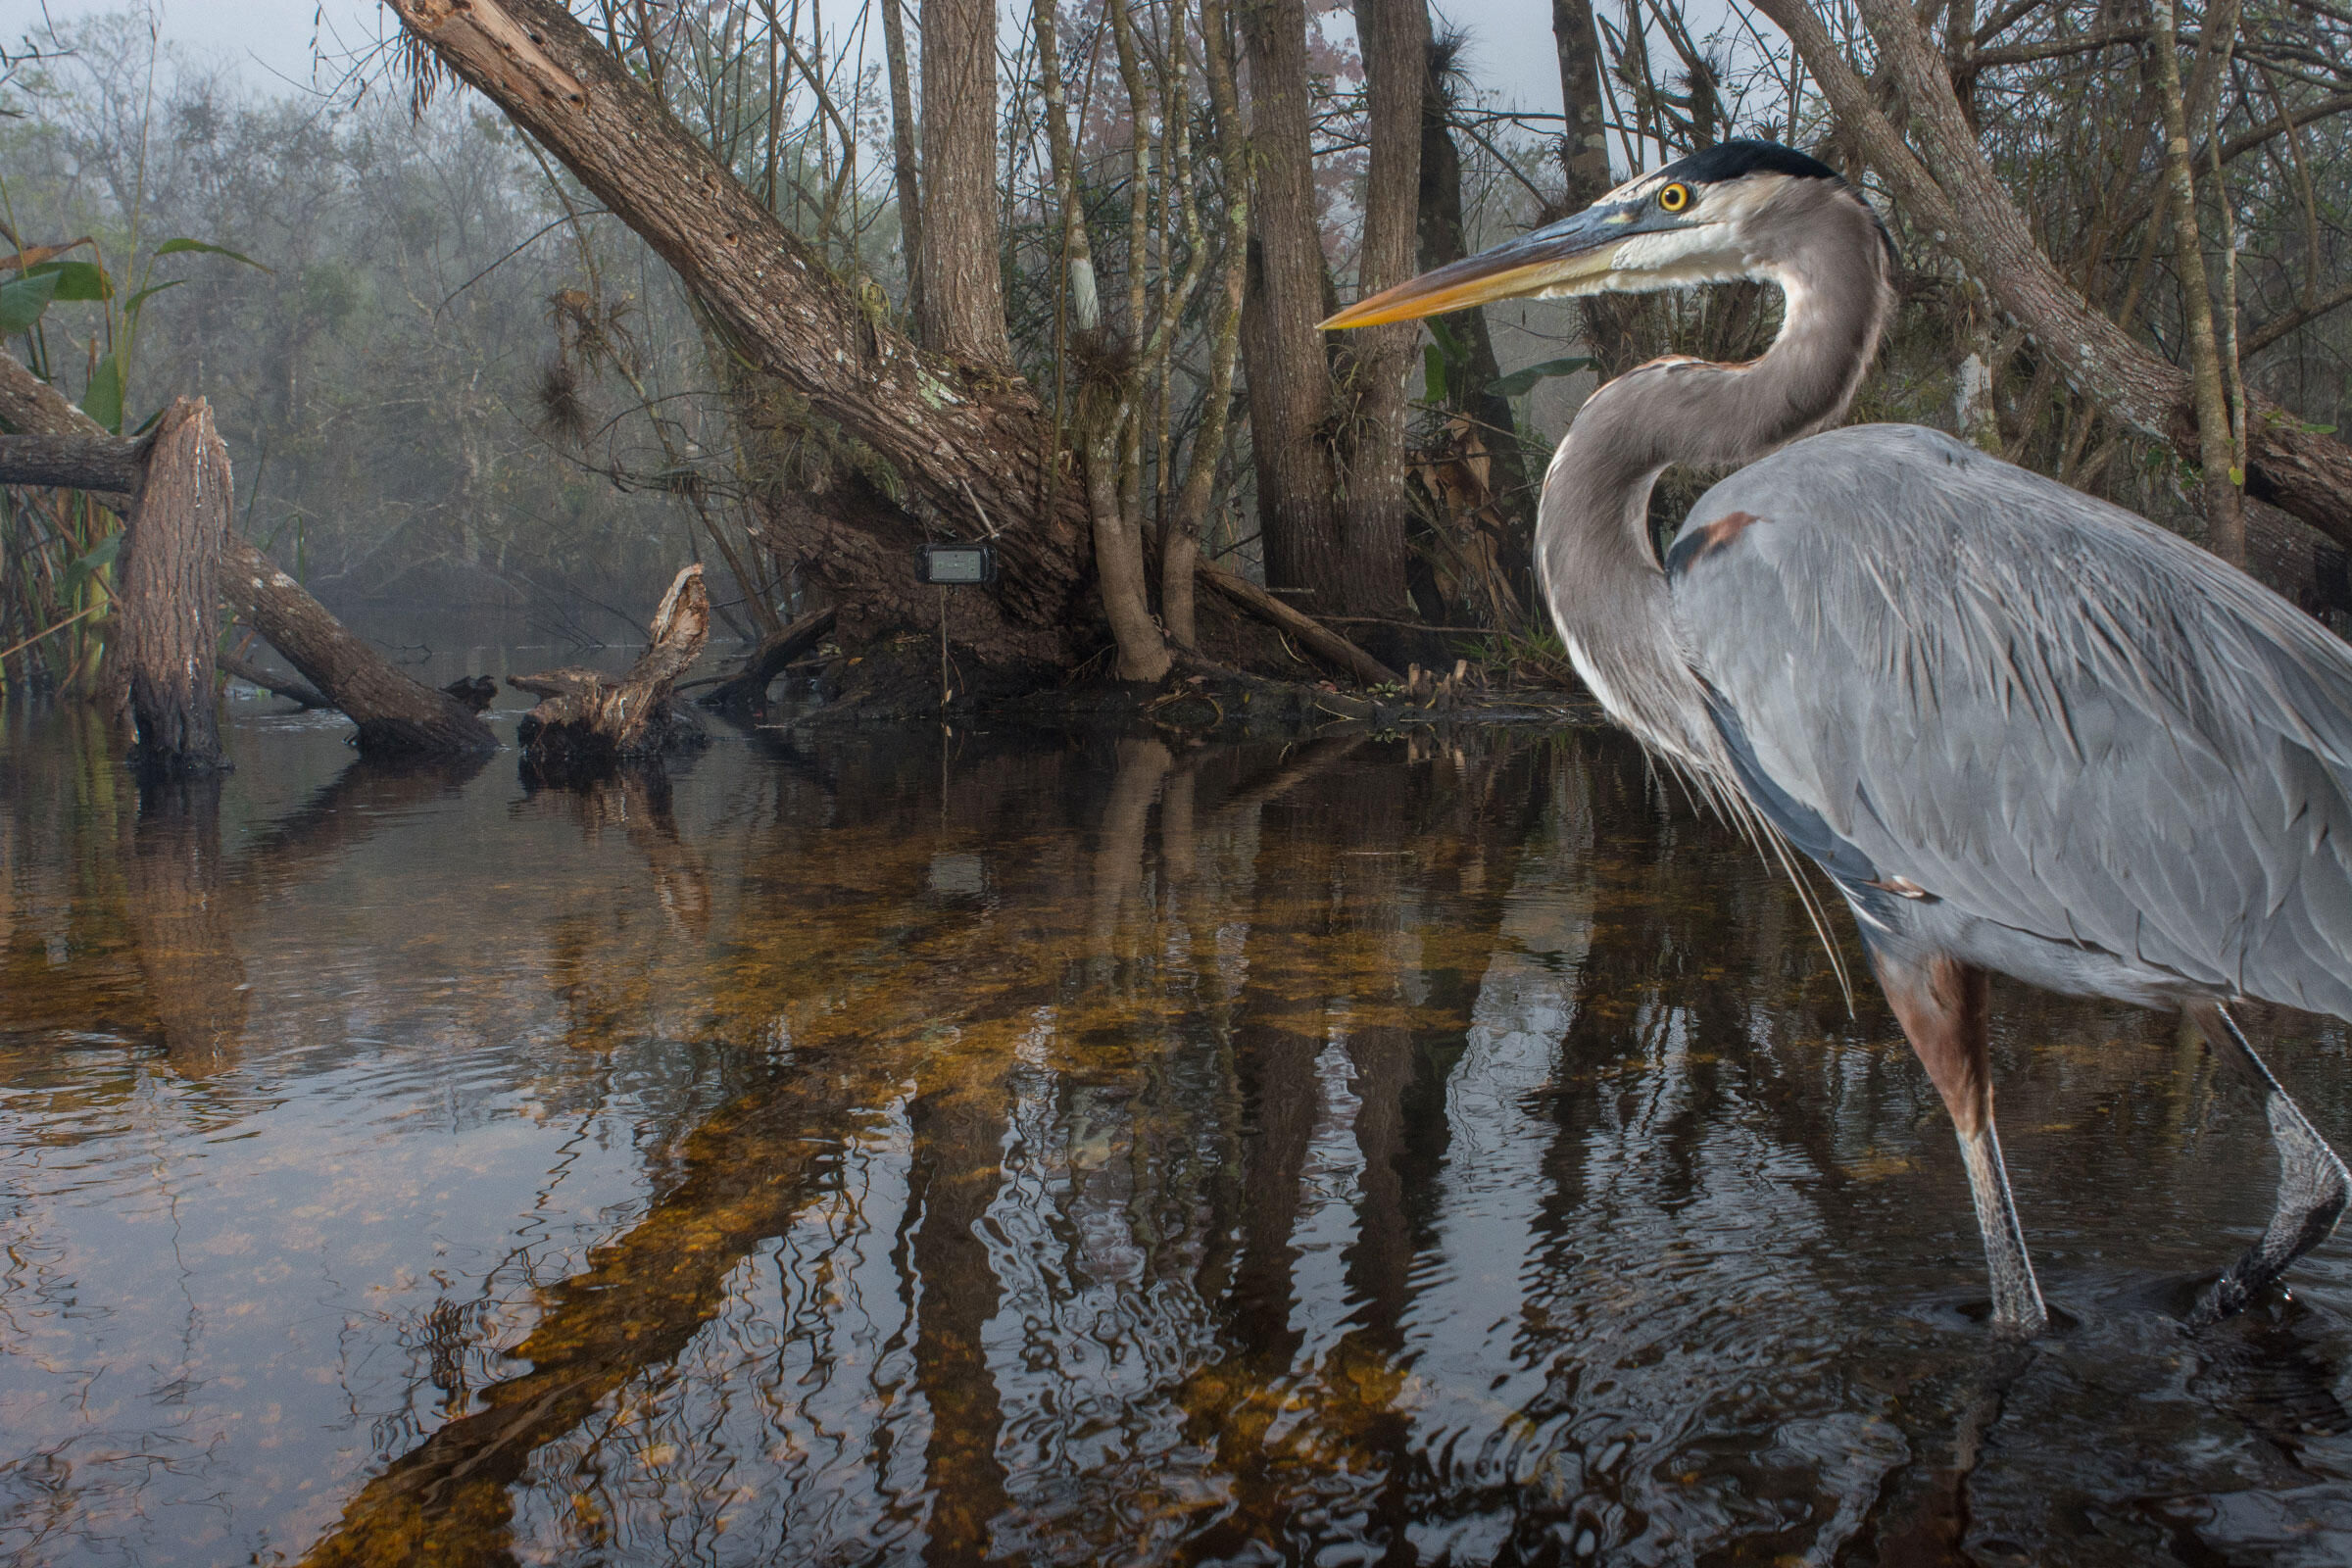 This is a picture of a Great Blue Heron. This is not a Florida Panther. Carlton Ward Jr.